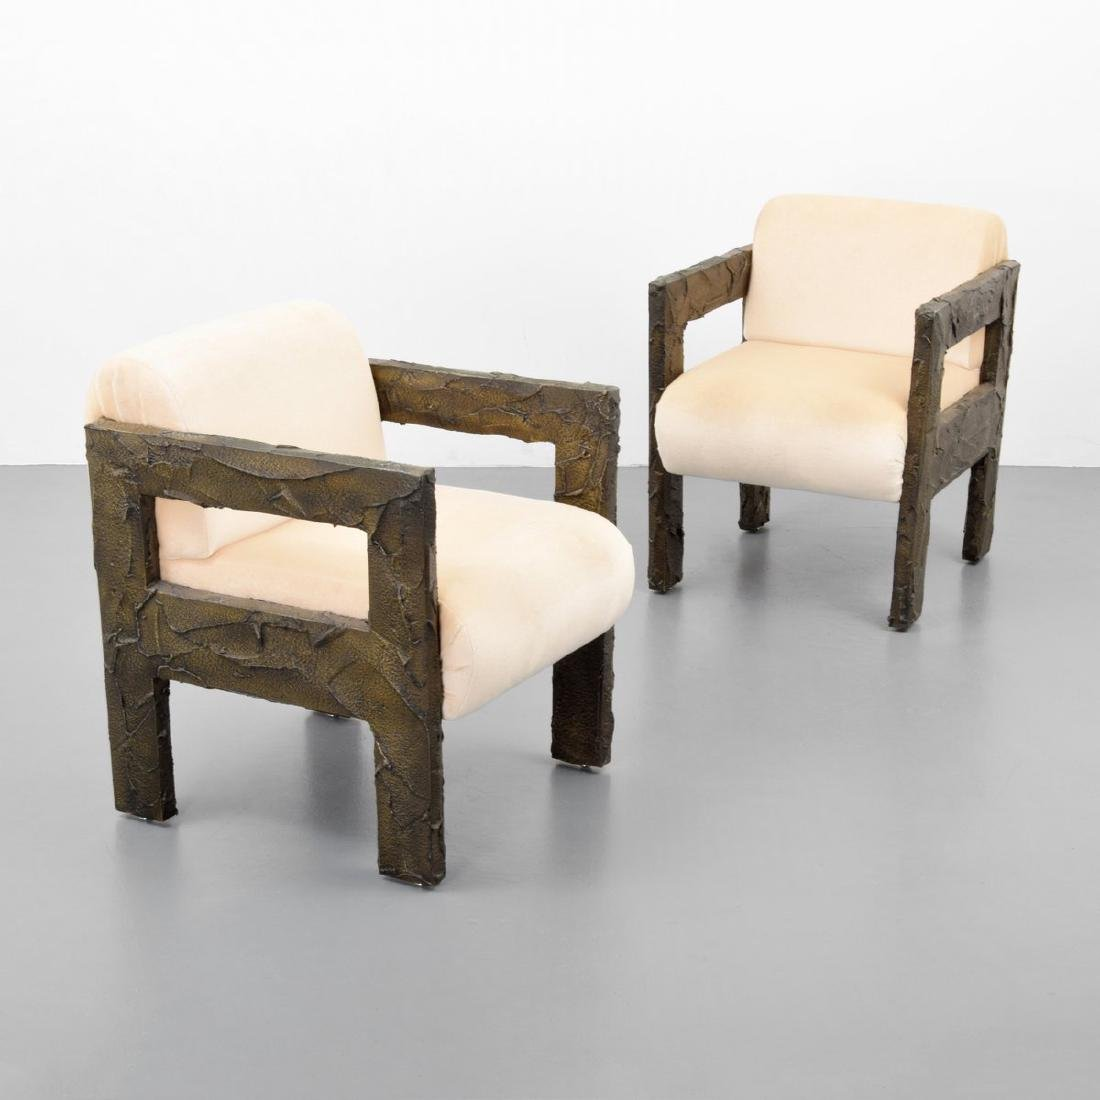 Pair of Paul Evans SCULPTED BRONZE Lounge Chairs